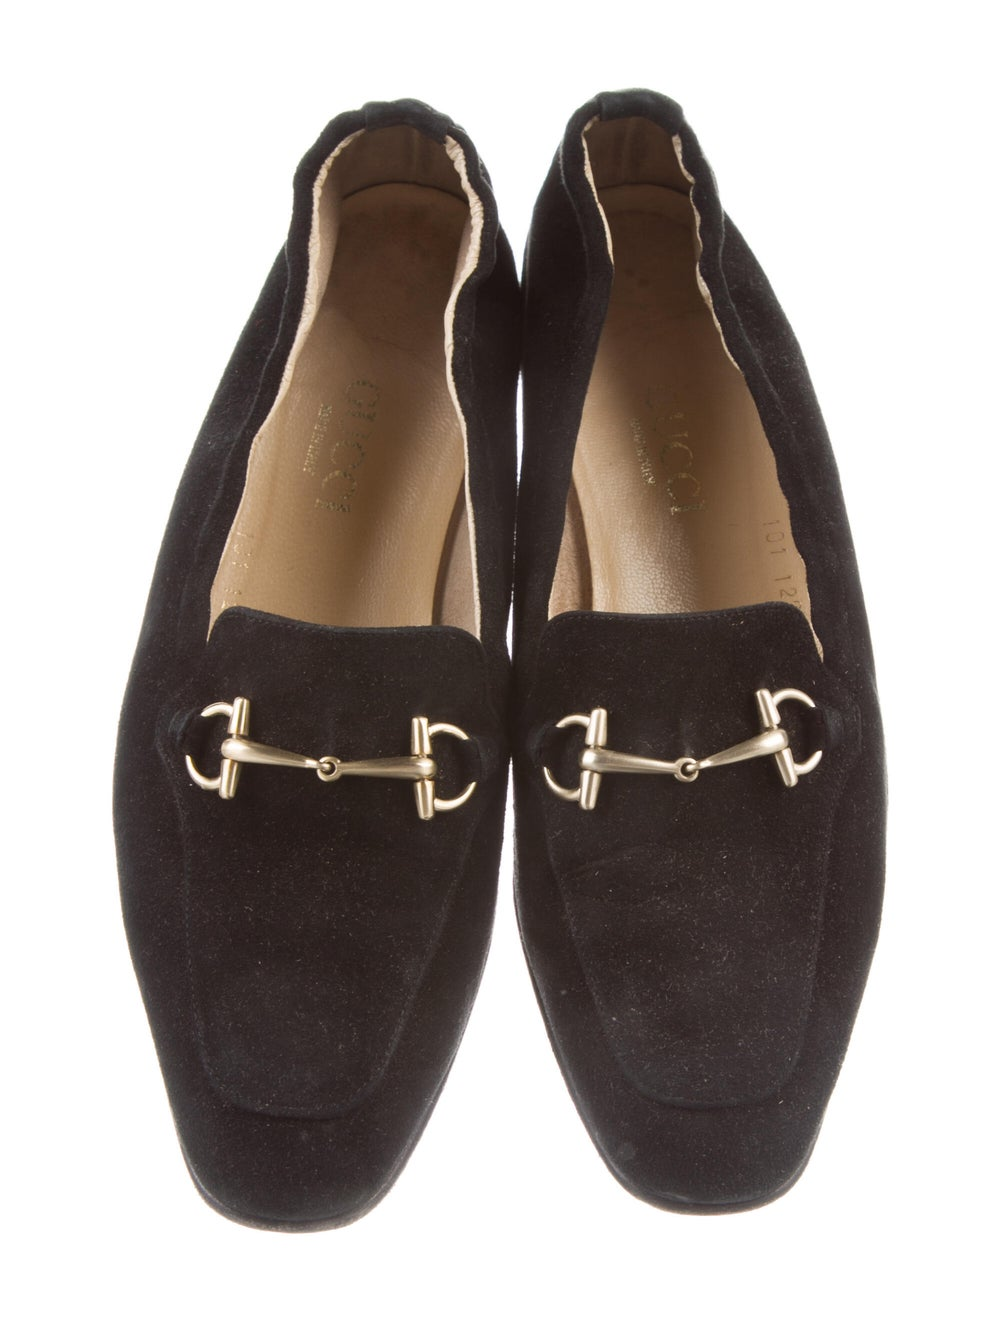 Gucci Horsebit Accent Suede Loafers Black - image 3